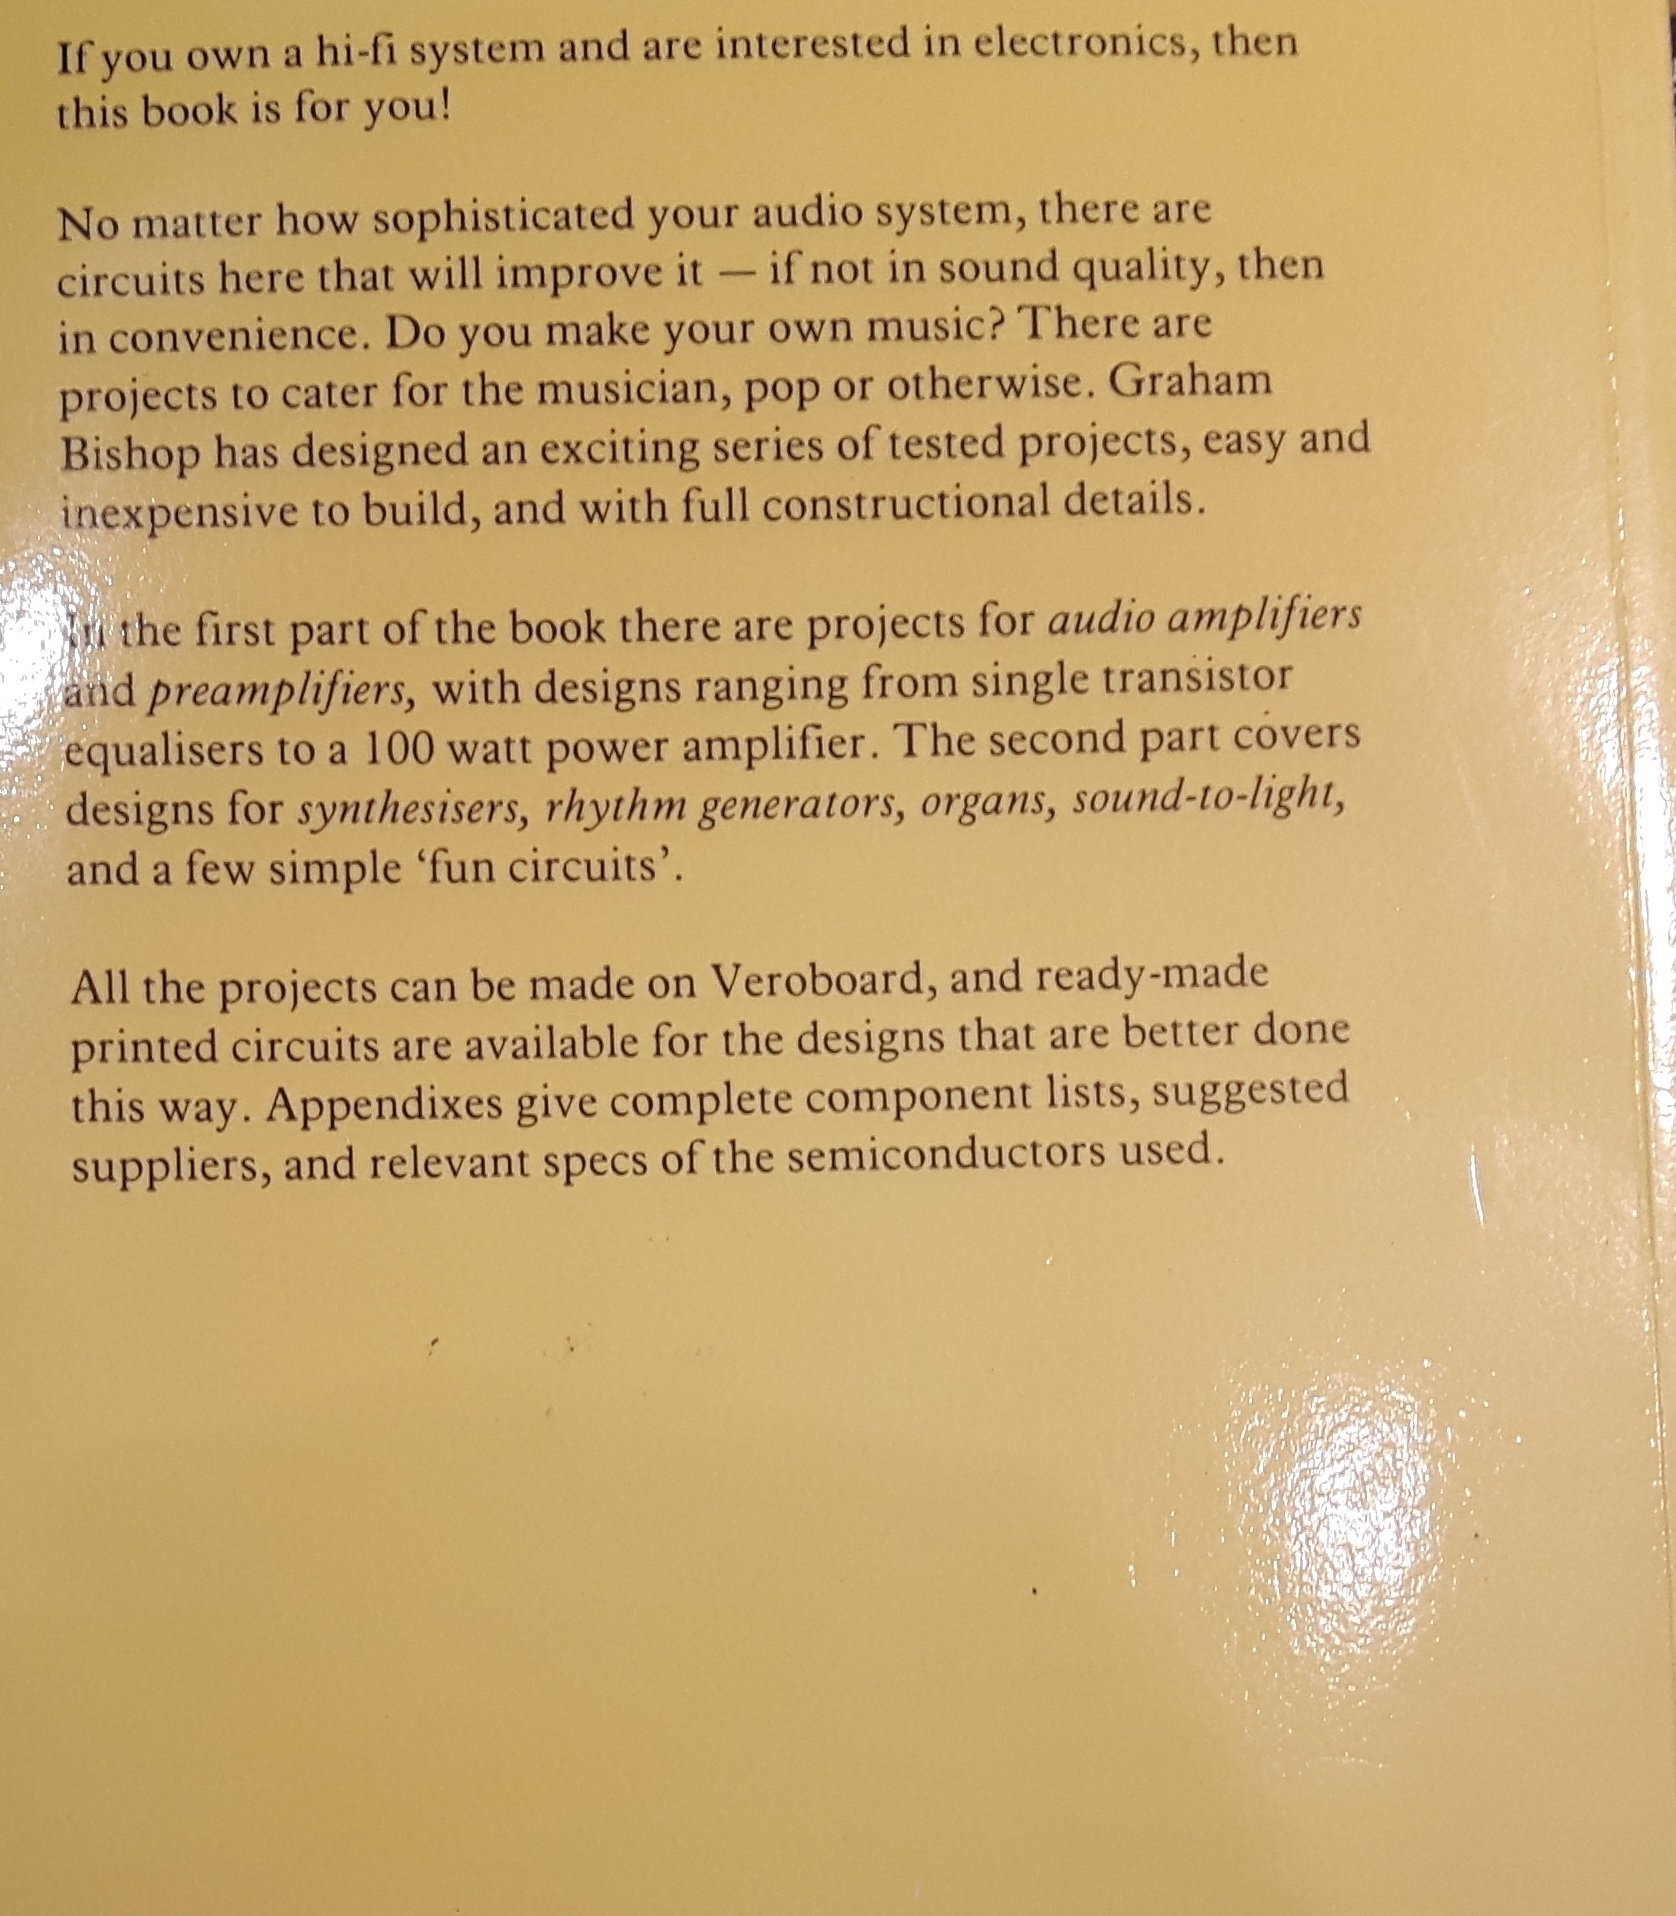 Electronic Projects Audio Circuits And No 3 Papermacs Generator Circuit Design Gd Bishop 9780333275139 Books